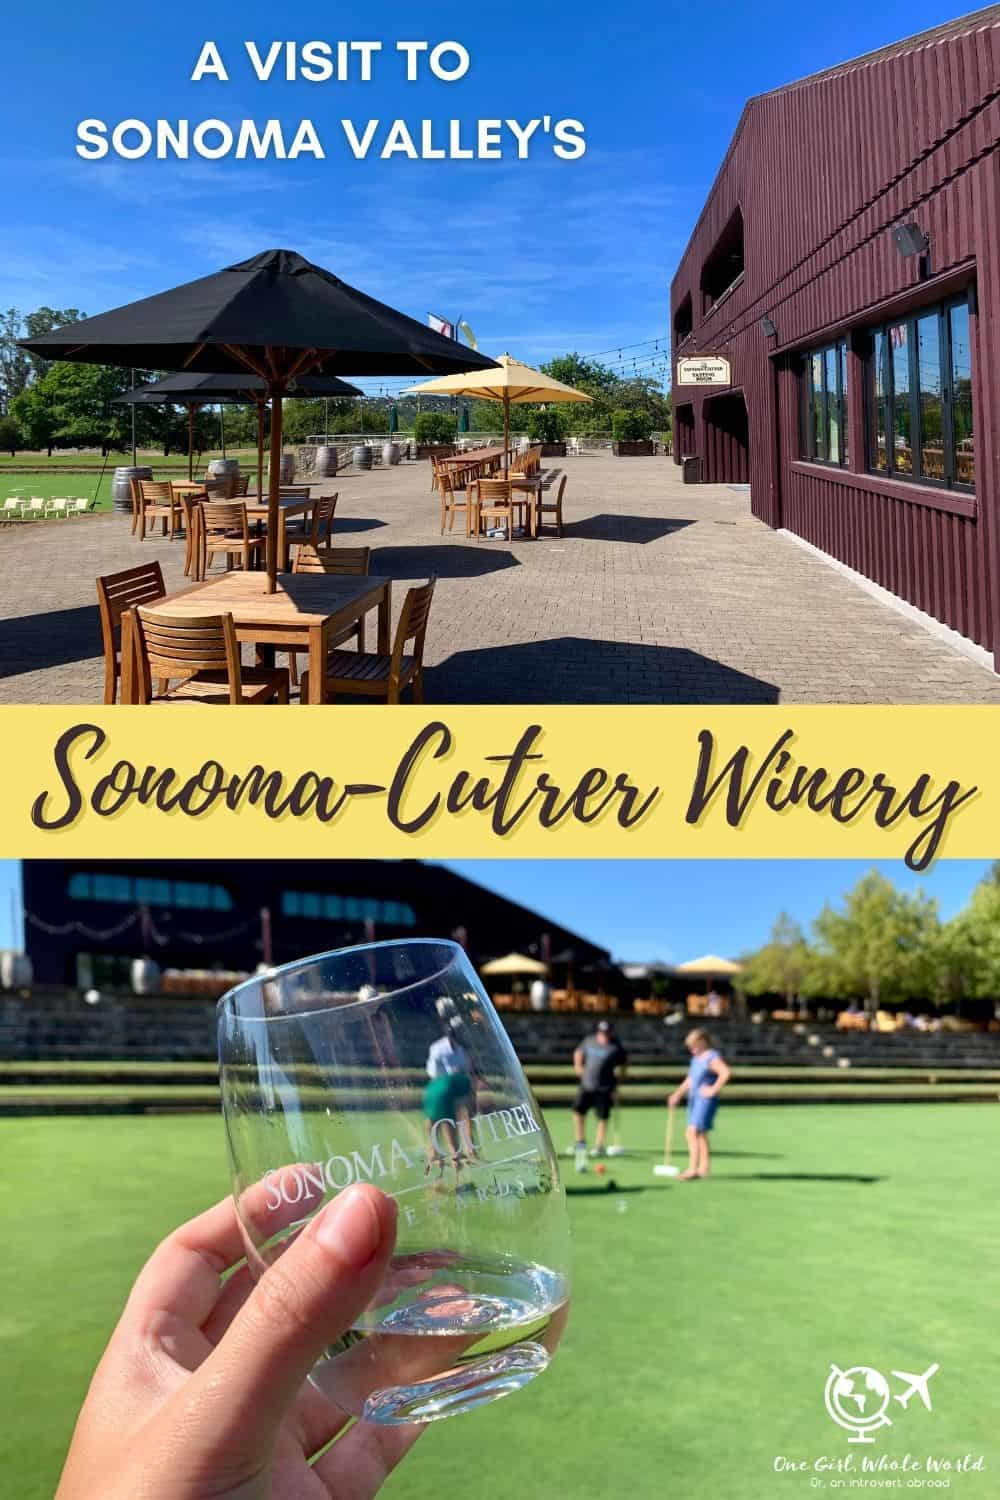 Visiting Sonoma-Cutrer in California's Sonoma Valley | The Sonoma Valley doesn't get as much love as nearby Napa, but I think it's much cooler and it's definitely less crowded. And one of the wineries you need to visit is beautiful Sonoma-Cutrer...what to do there, including wine tastings, vineyard tour, croquet, and more! #wineries #sonoma #california